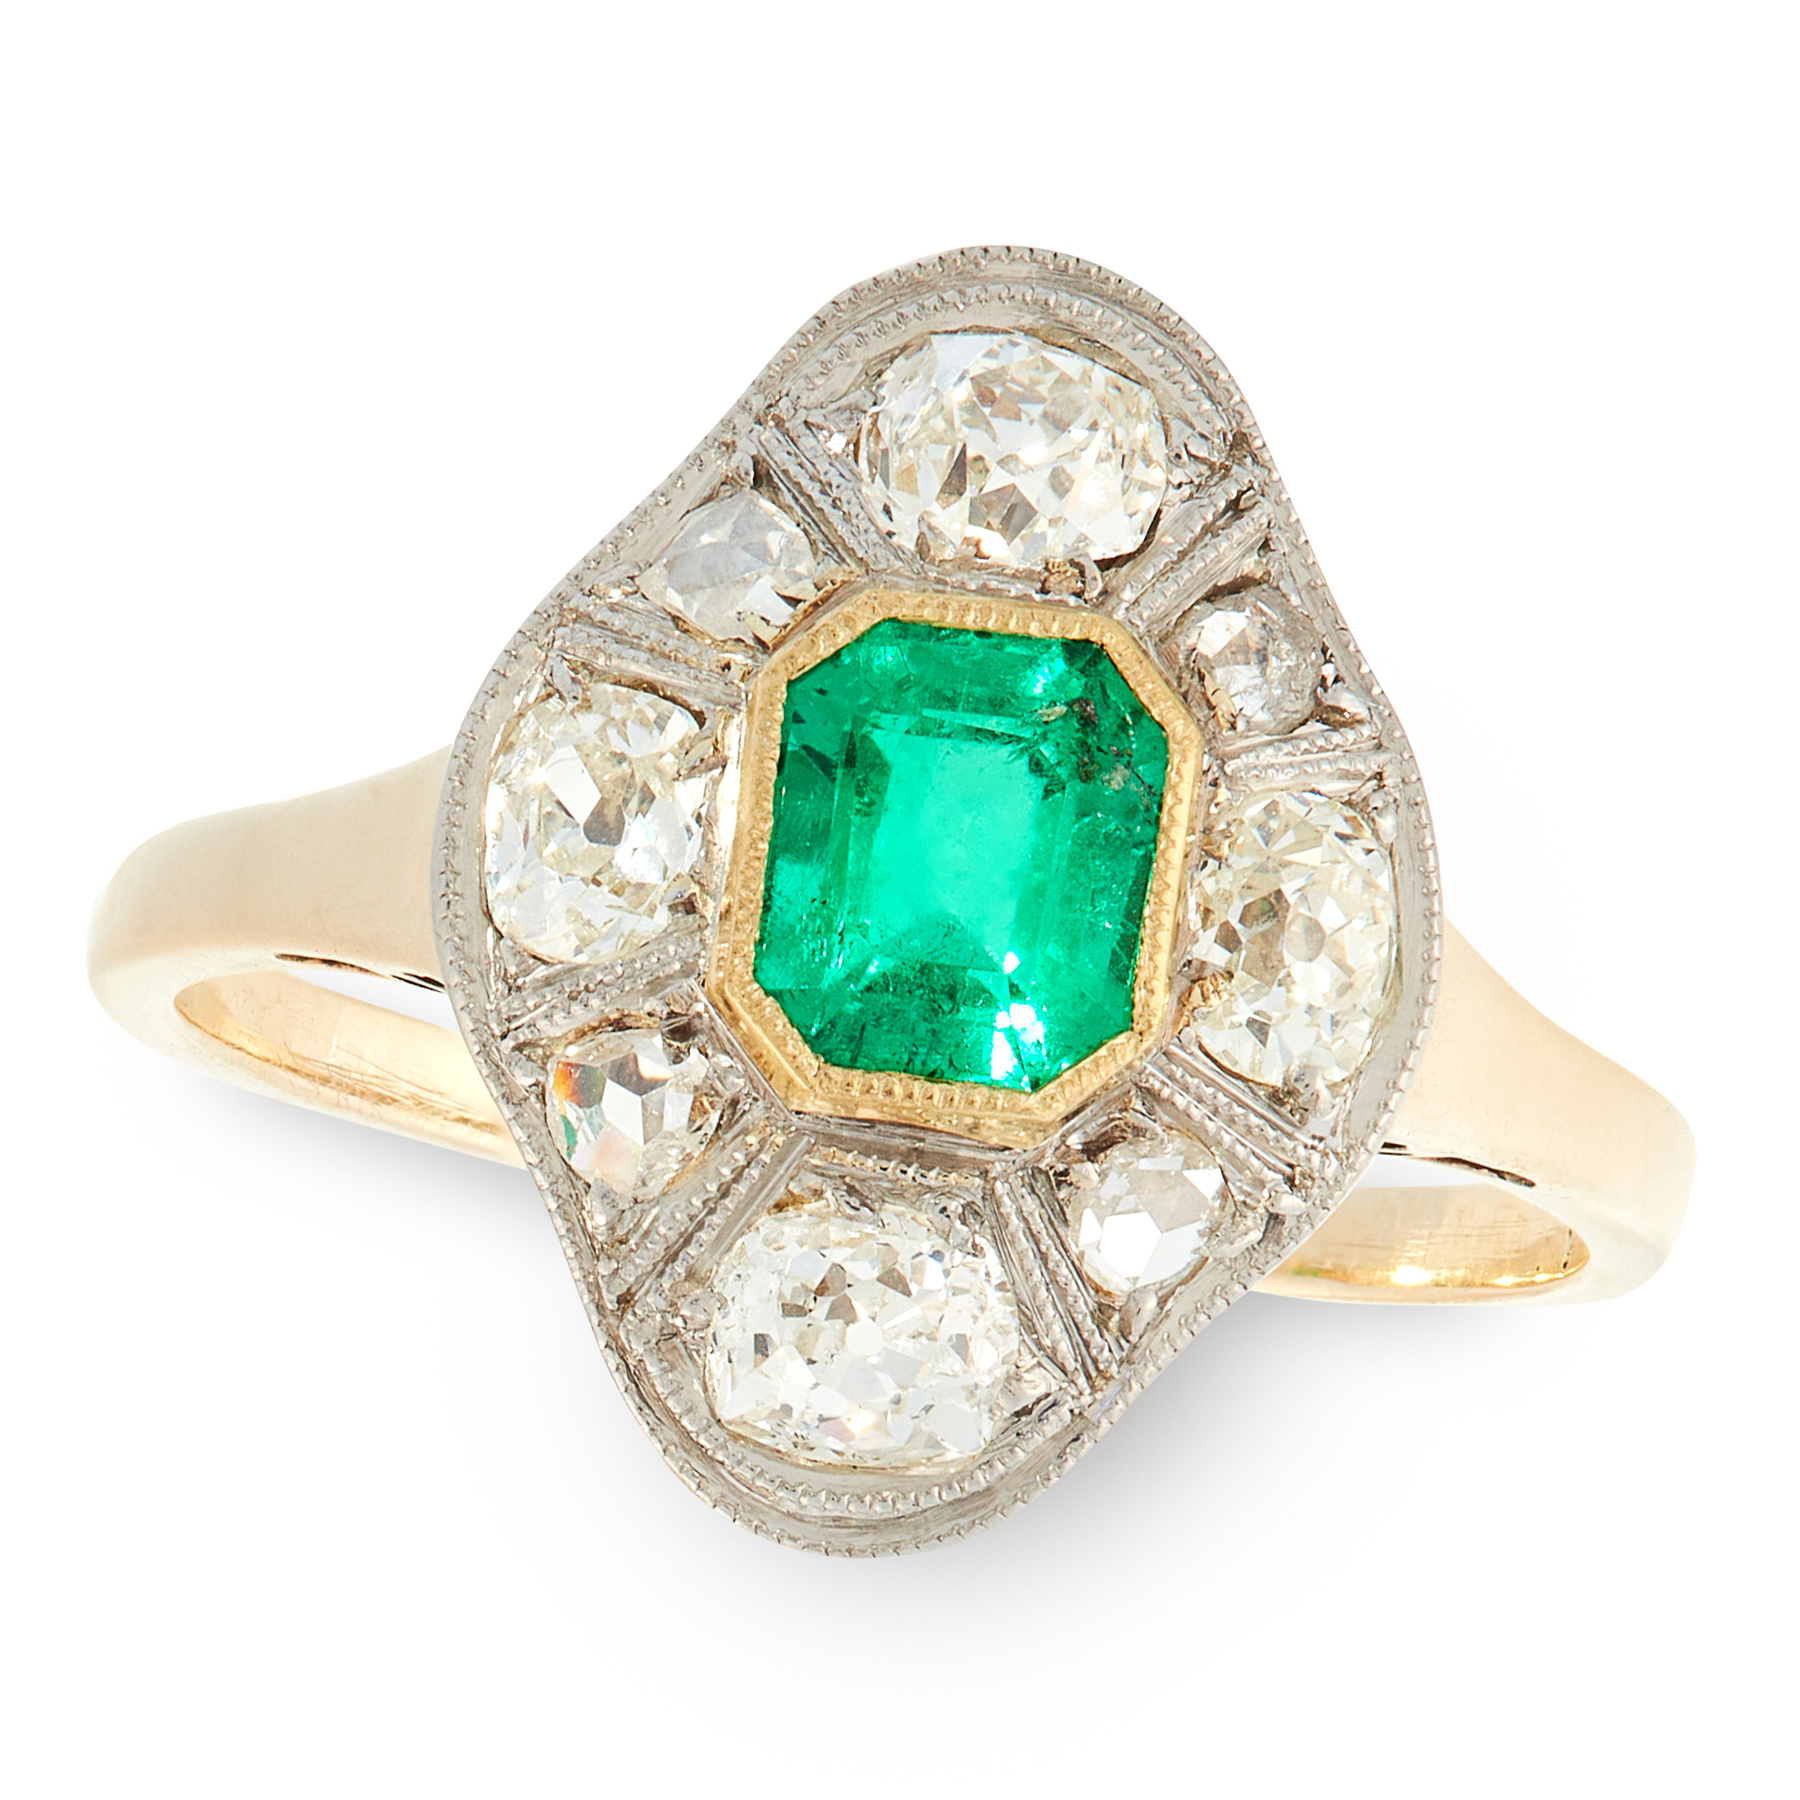 A COLOMBIAN EMERALD AND DIAMOND RING, CIRCA 1930 in 14ct yellow gold, set with an emerald cut - Image 2 of 2